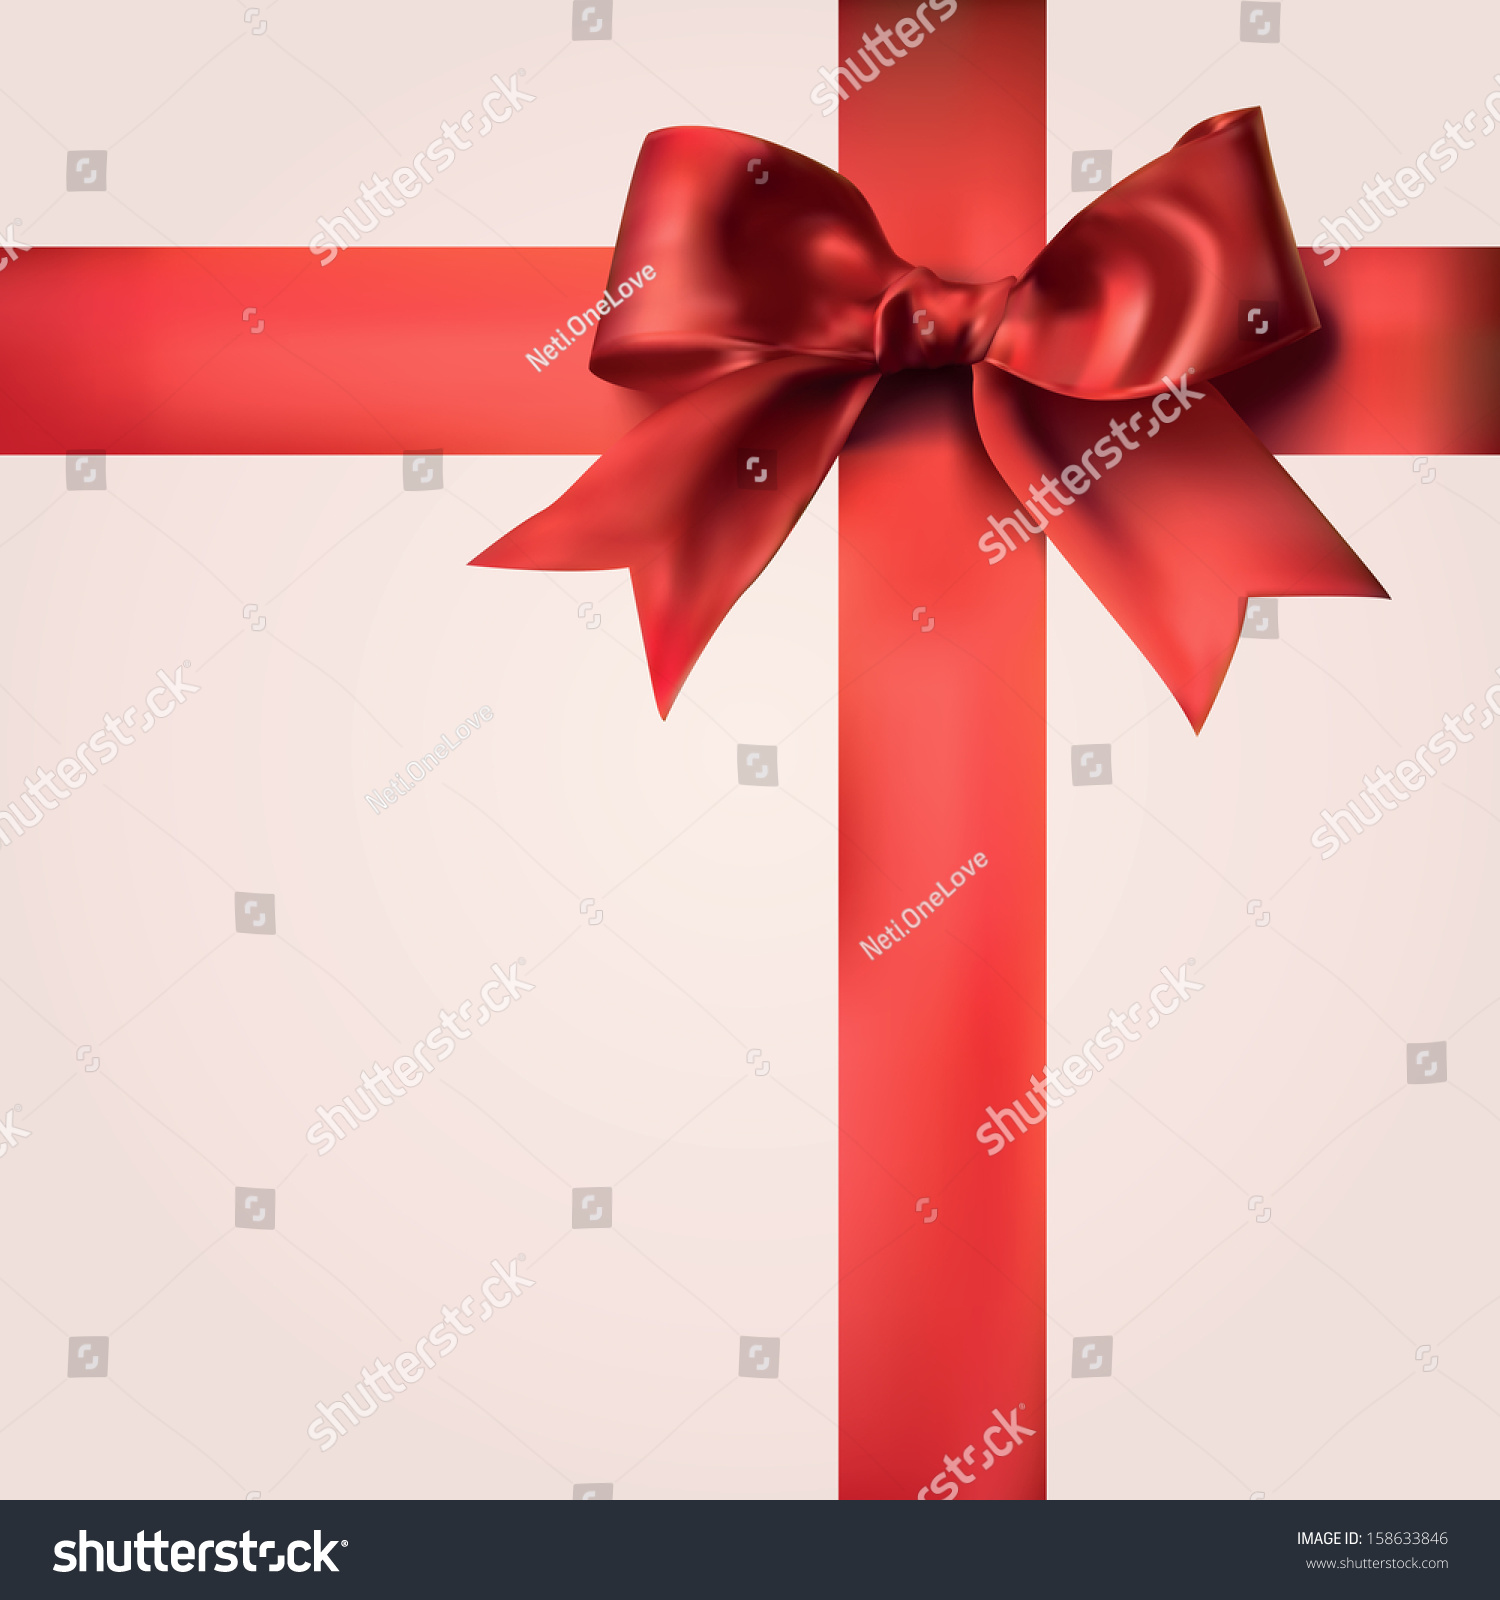 Realistic decorative red gift ribbons bow stock vector 158633846 realistic decorative red gift ribbons with bow negle Image collections